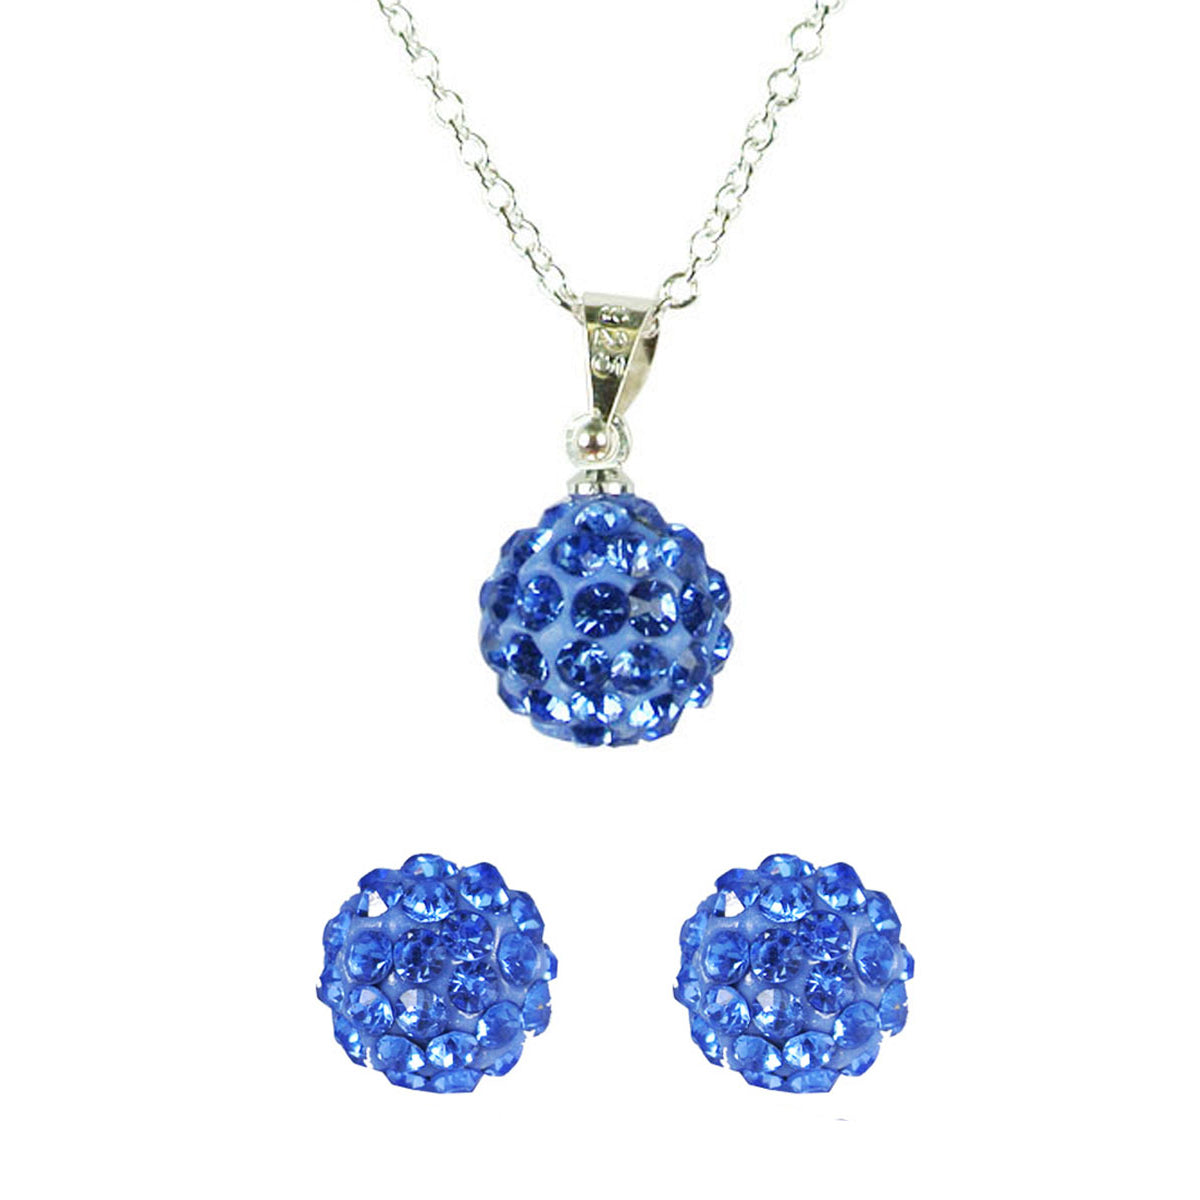 Swarovski Elements Crystal Disco Ball Pendant Necklace and Stud Earrings Jewelry Set